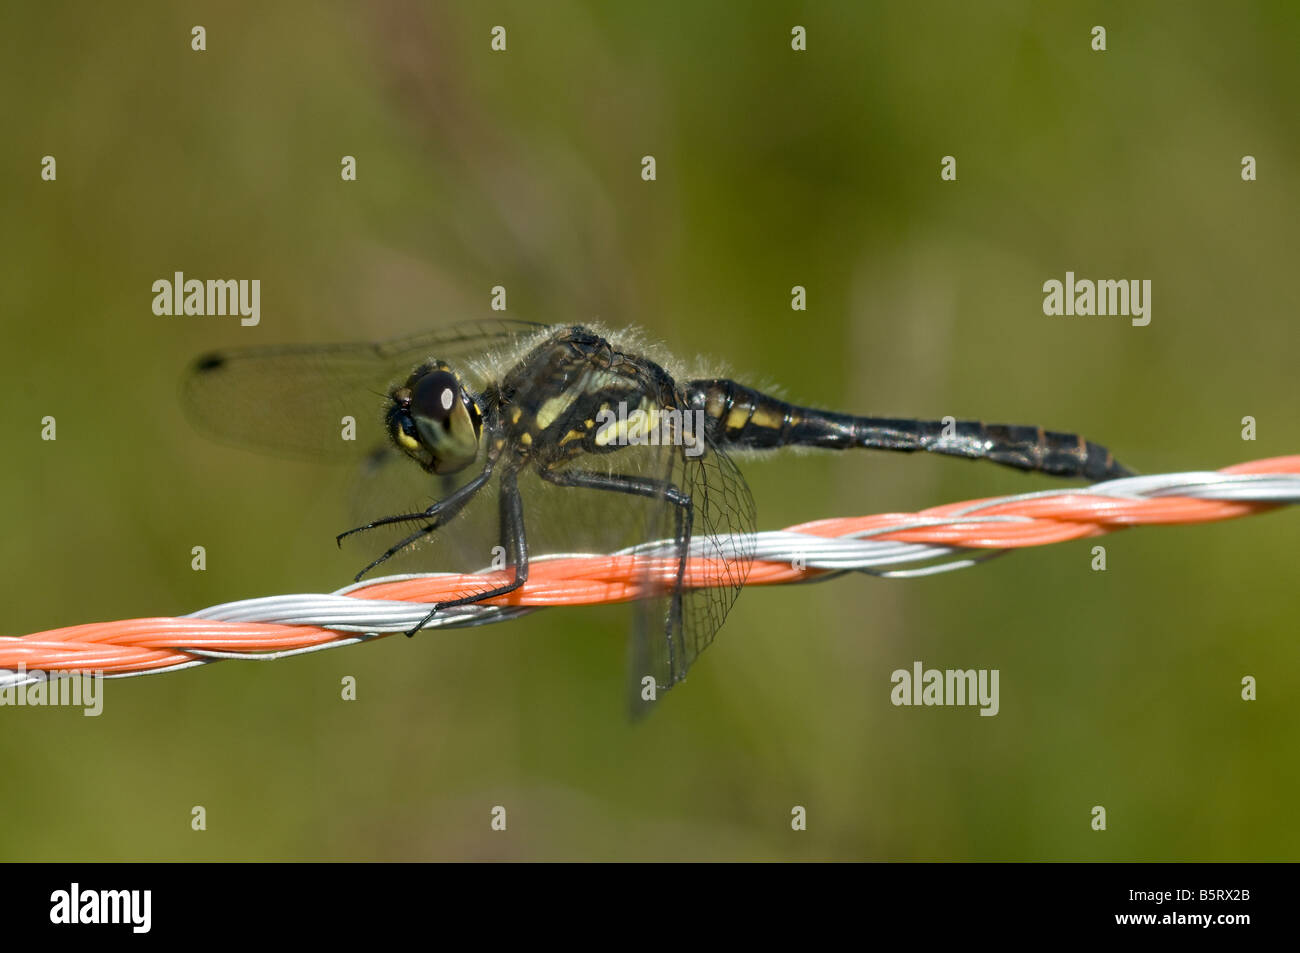 Electric Fence Insect Stock Photos Wire Dragonfly Sympetrum Danae Black Darter Perched On